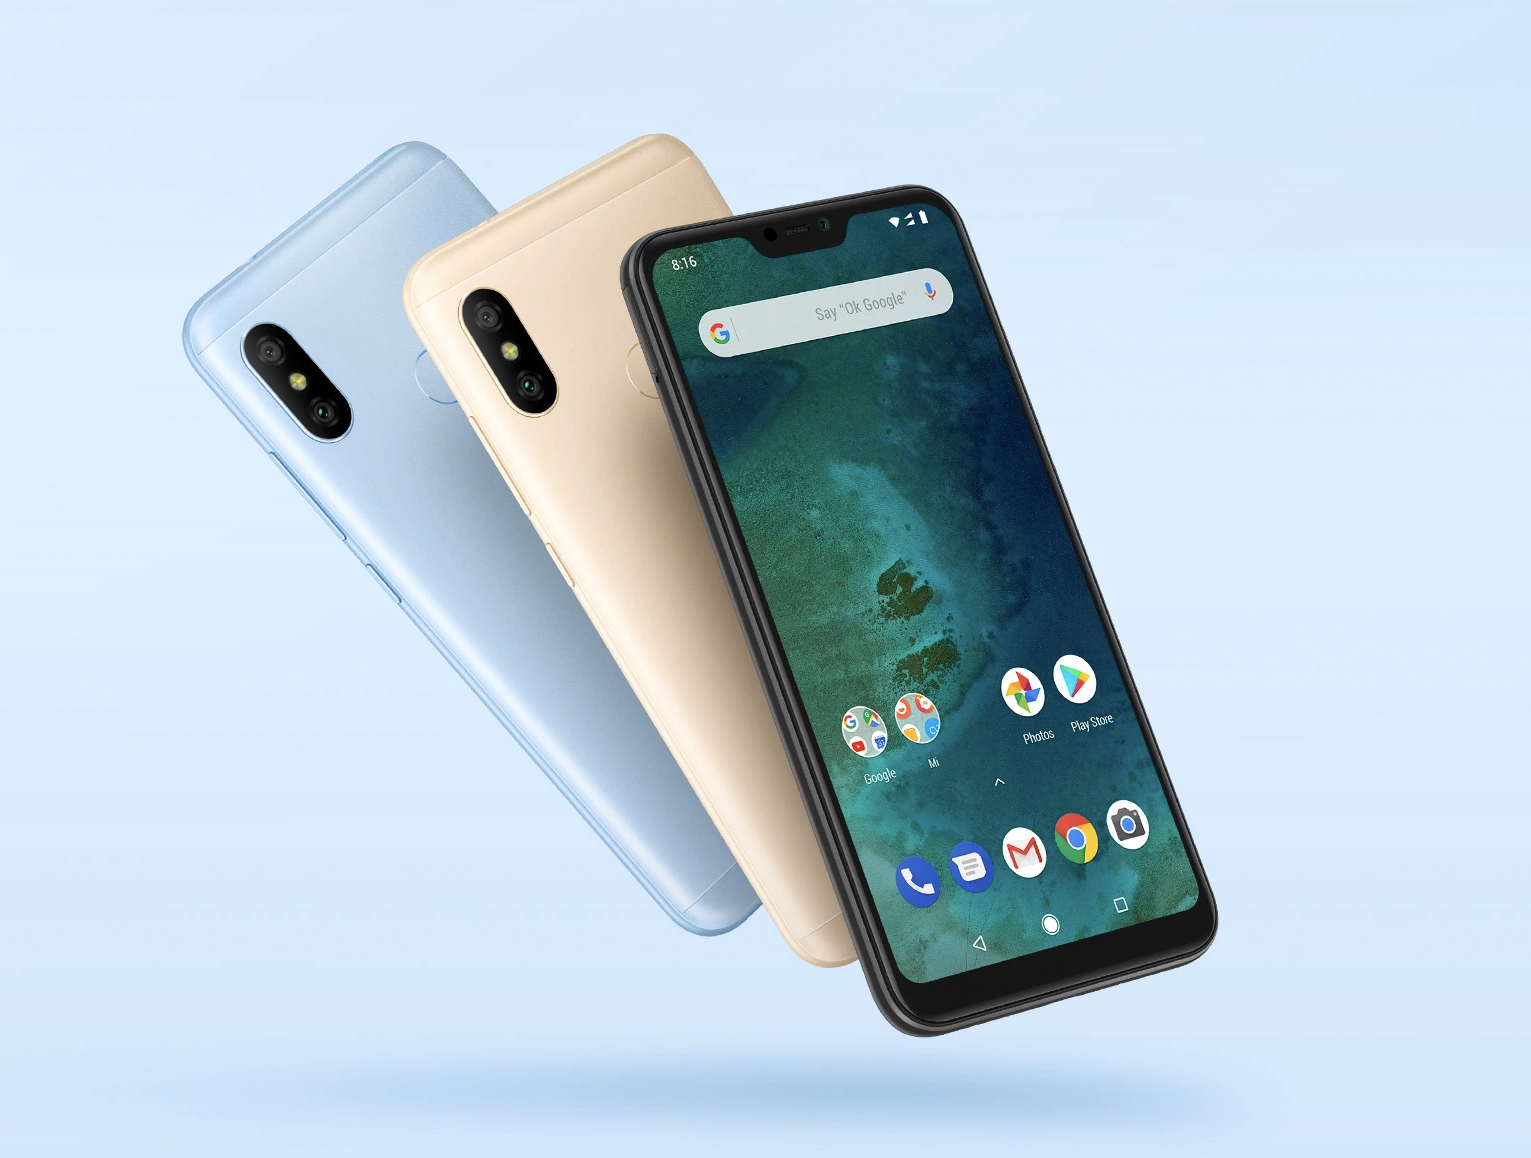 Xiaomi Mi A2 Lite gets Android 9 Pie update